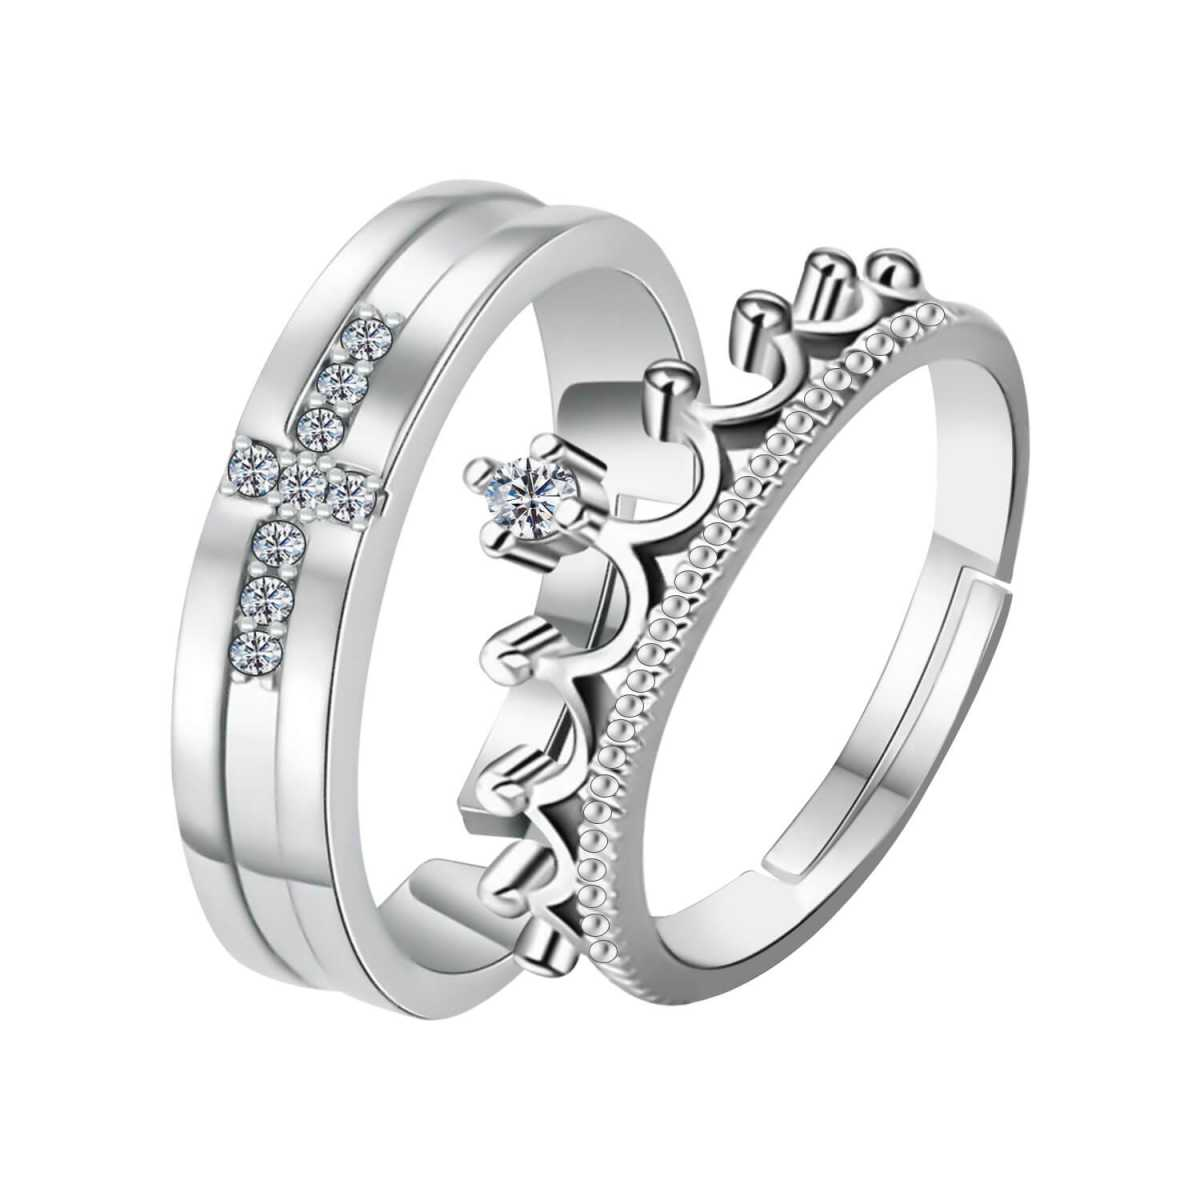 Silverplated  Exclusive couple ring For Men And Women Jewellery